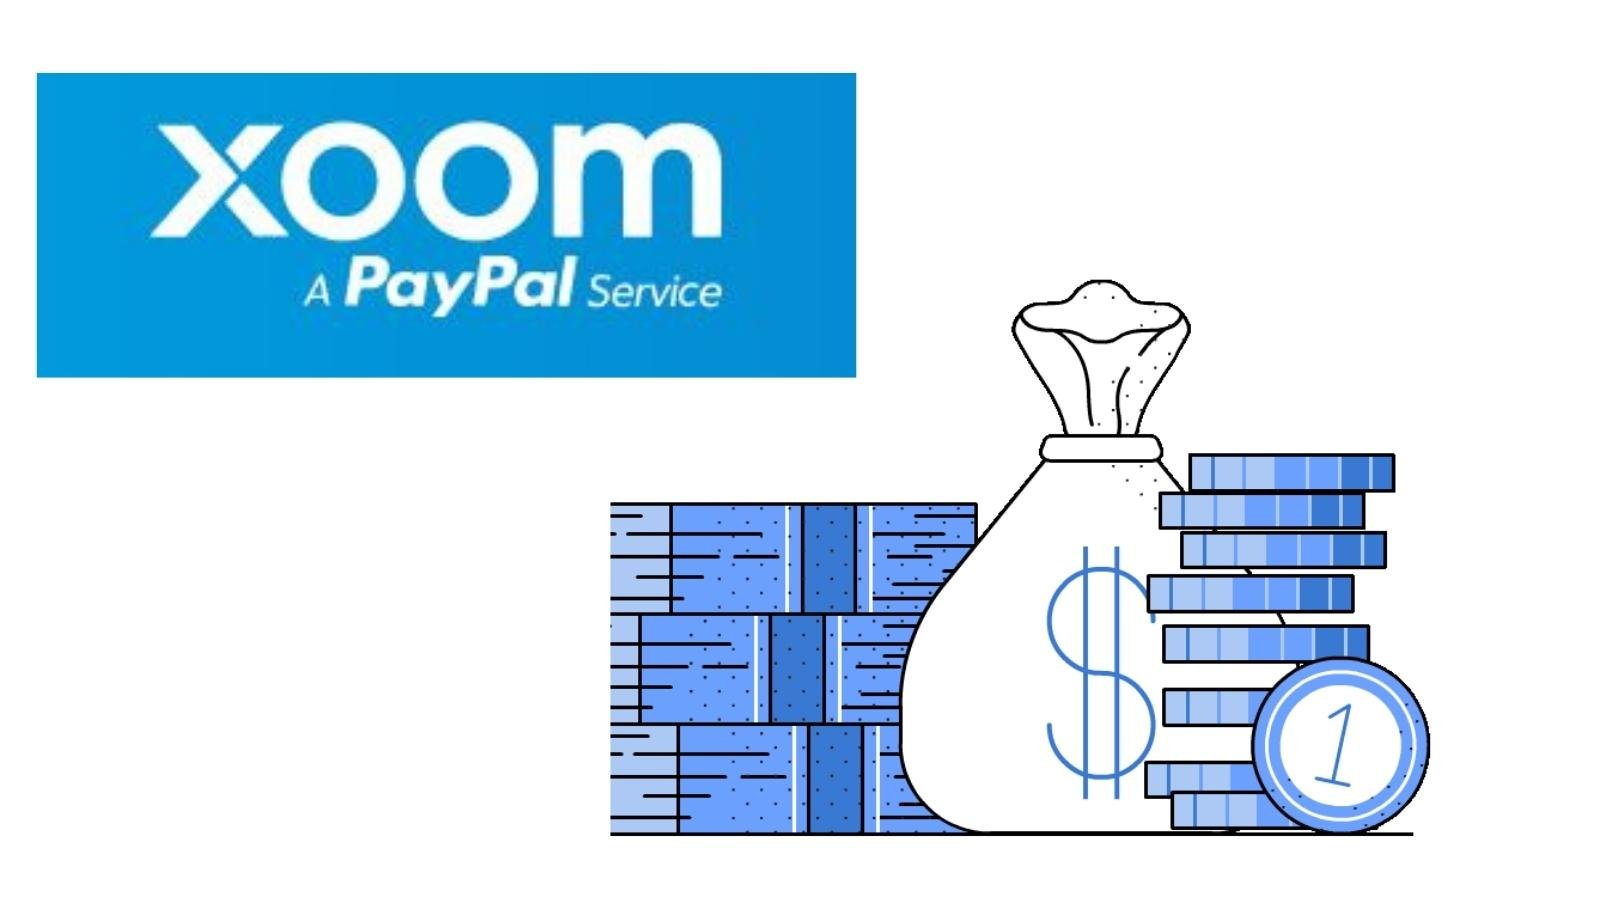 Xoom for international payments